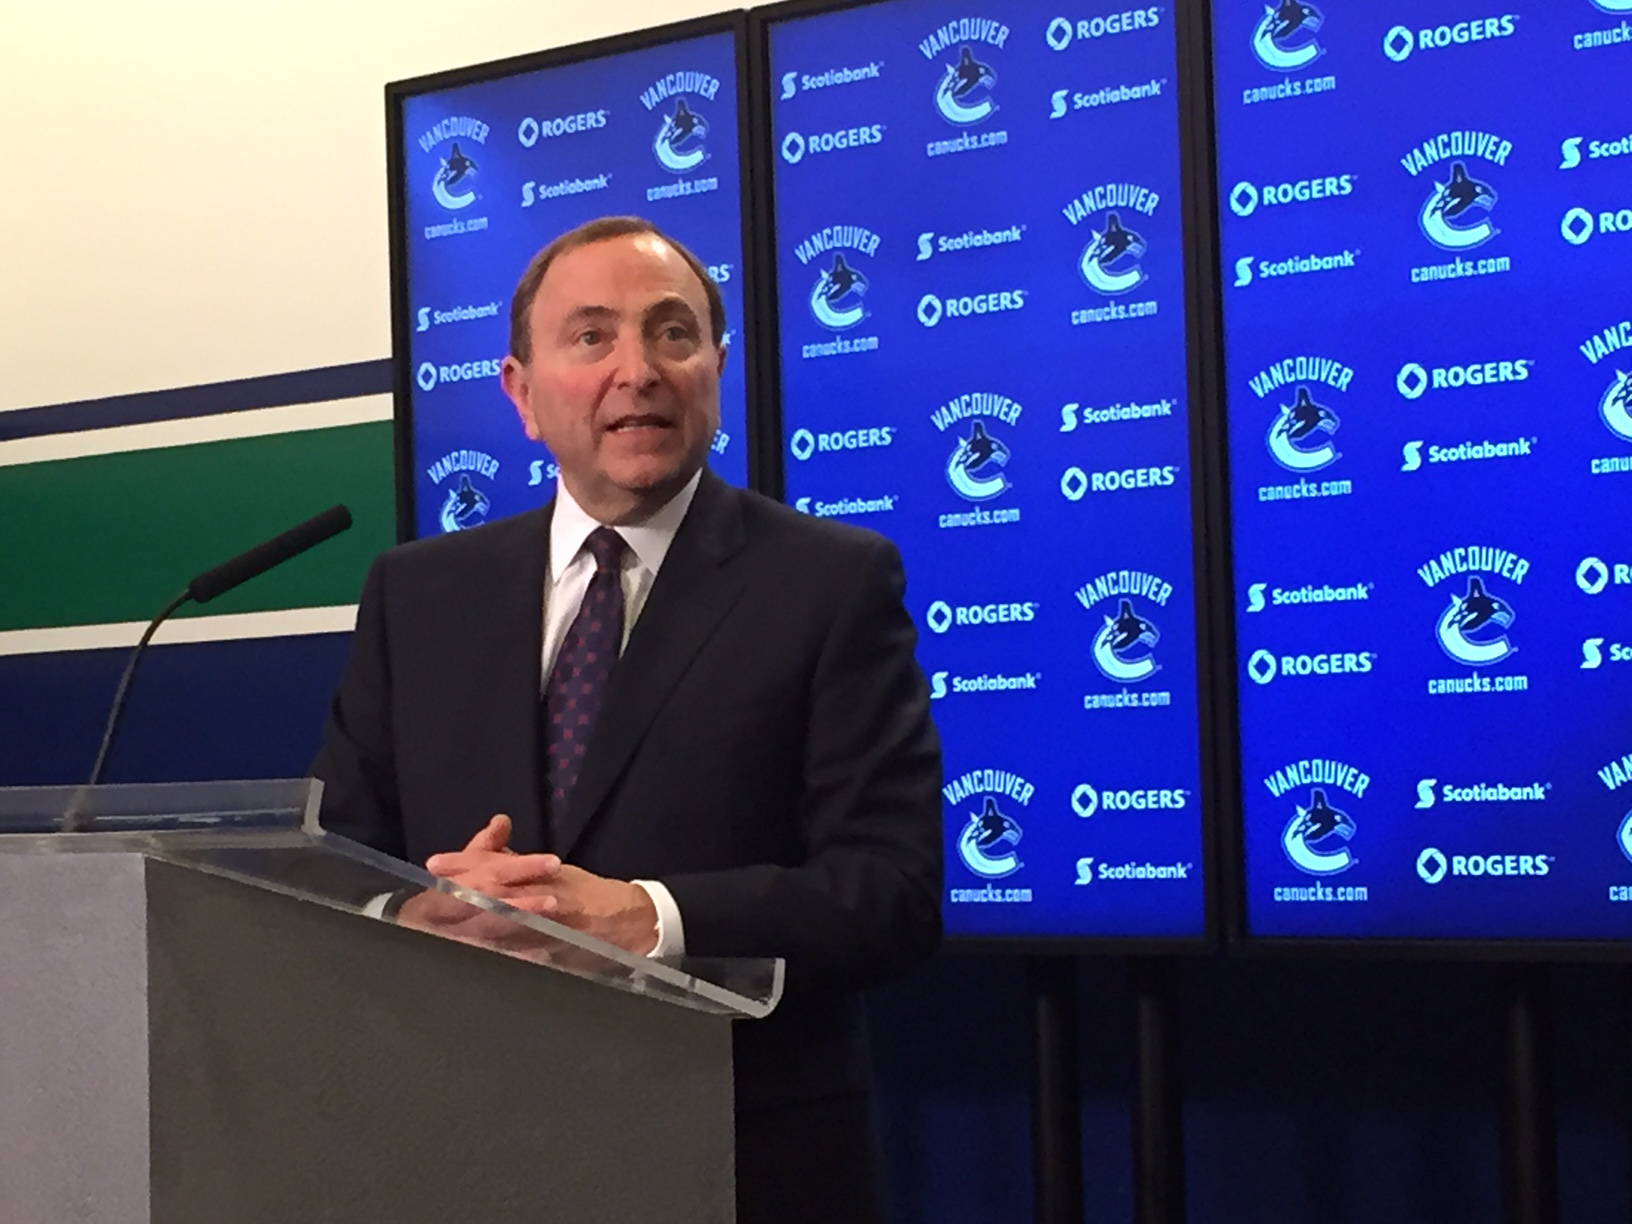 Gary Bettman said today in Vancouver he has no concerns about teams tanking for Connor McDavid (Mike Harrington/Buffalo News)